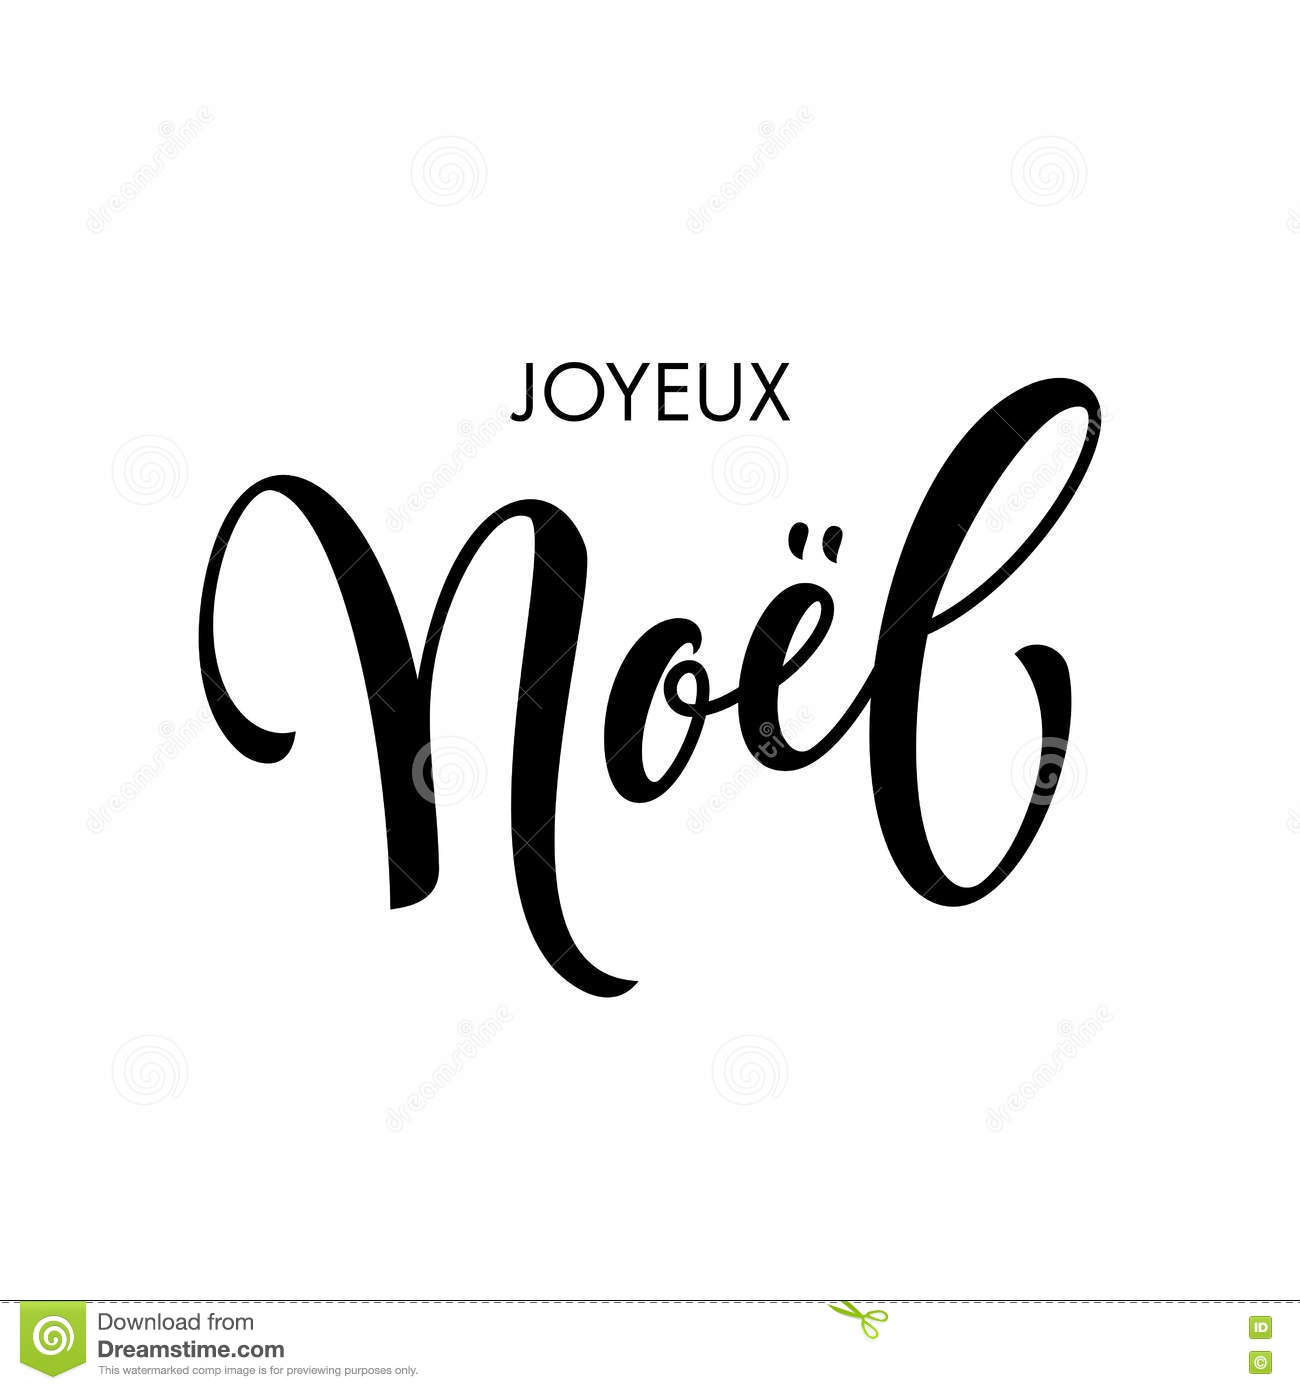 French Merry Christmas Joyeux Noel Calligraphy Text